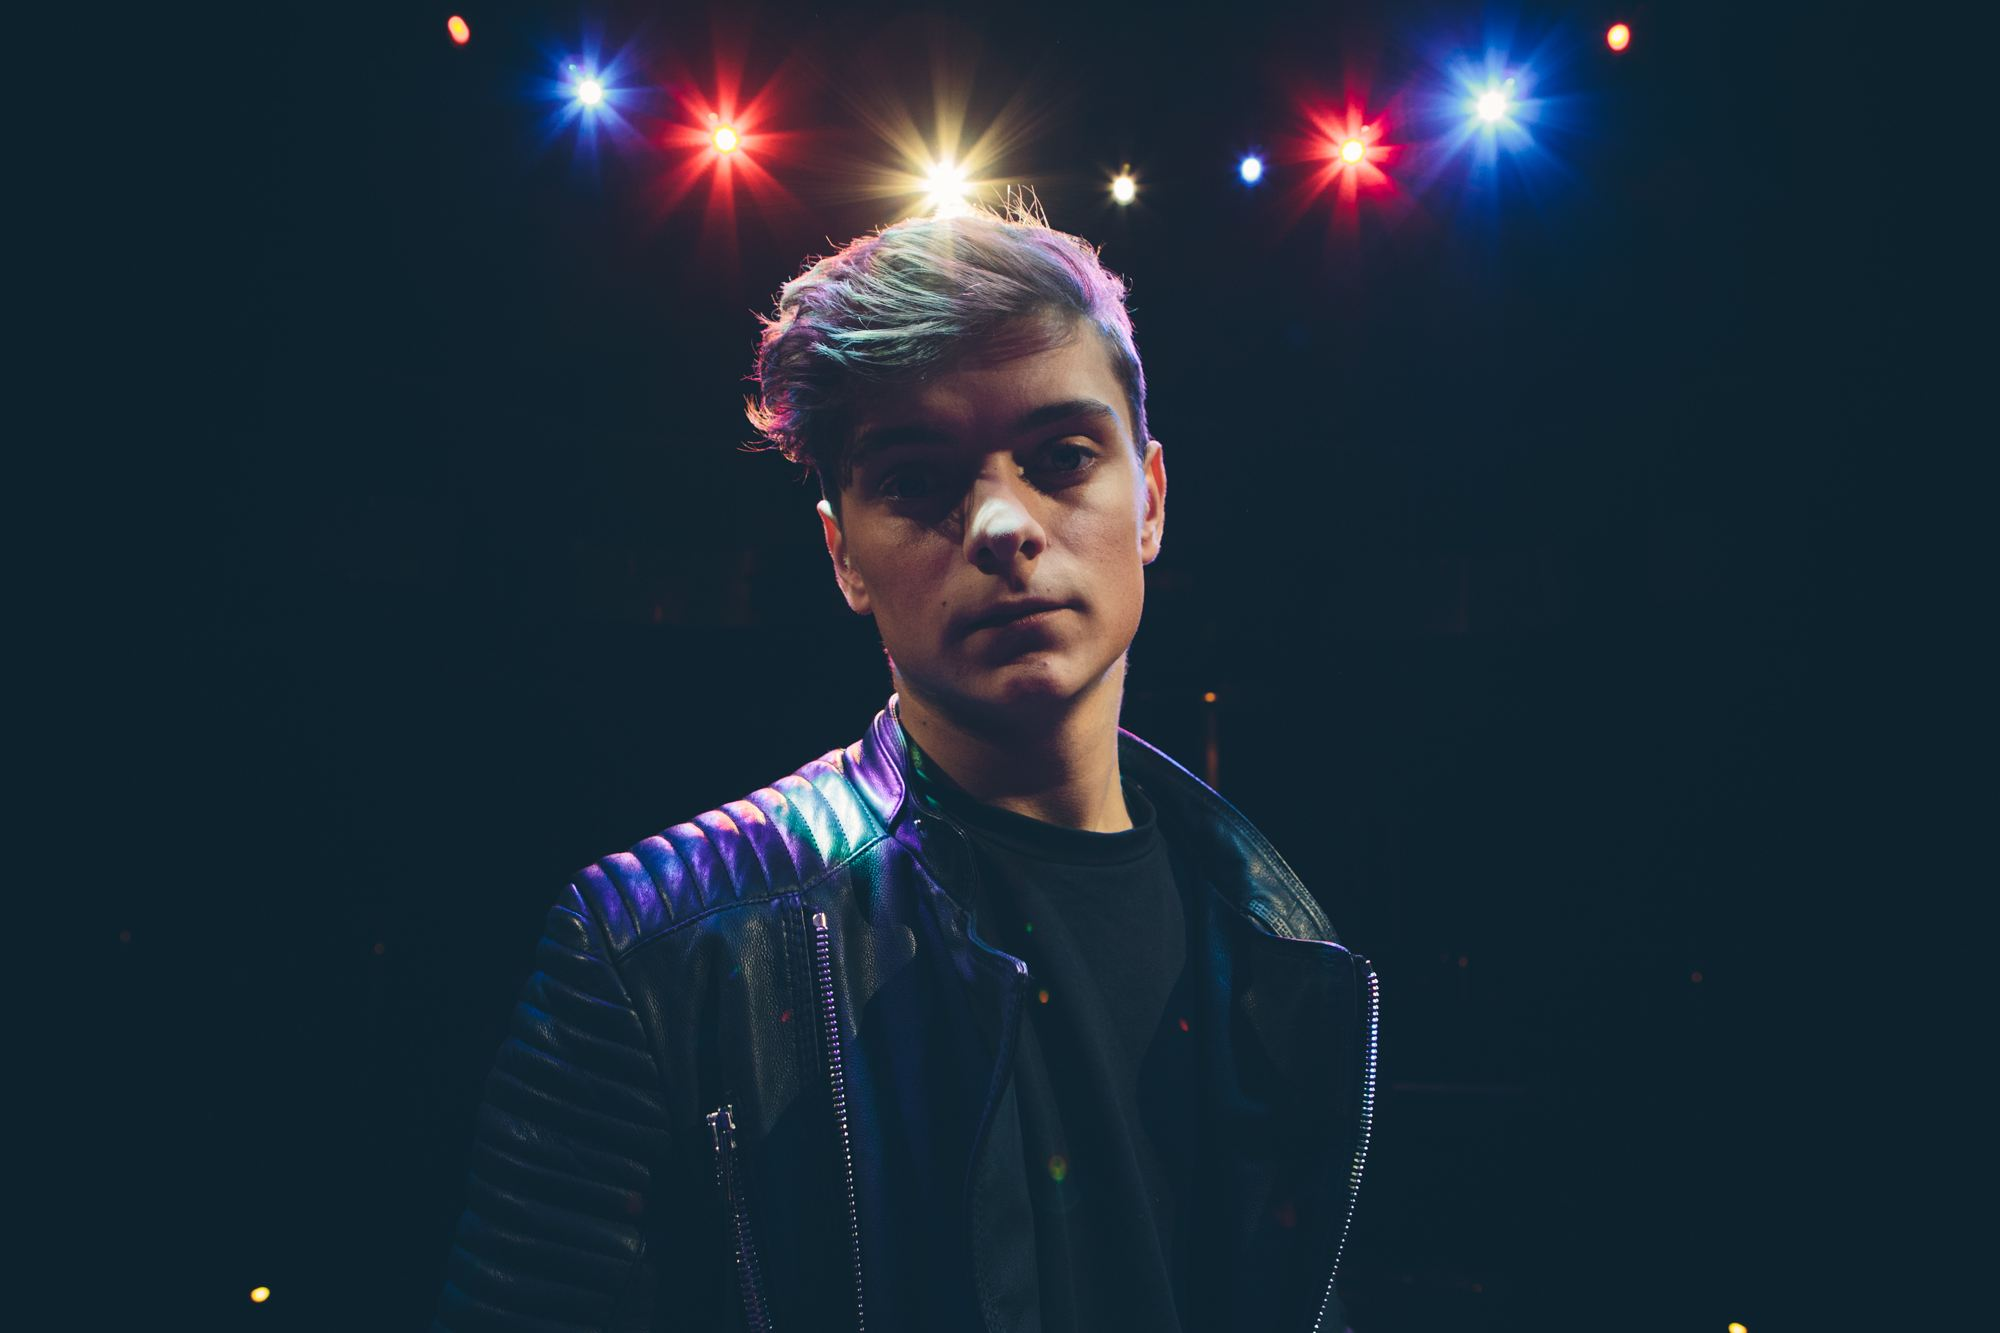 Martin Garrix reveals STMPD RCRDS label & teases a collab with Justin Bieber